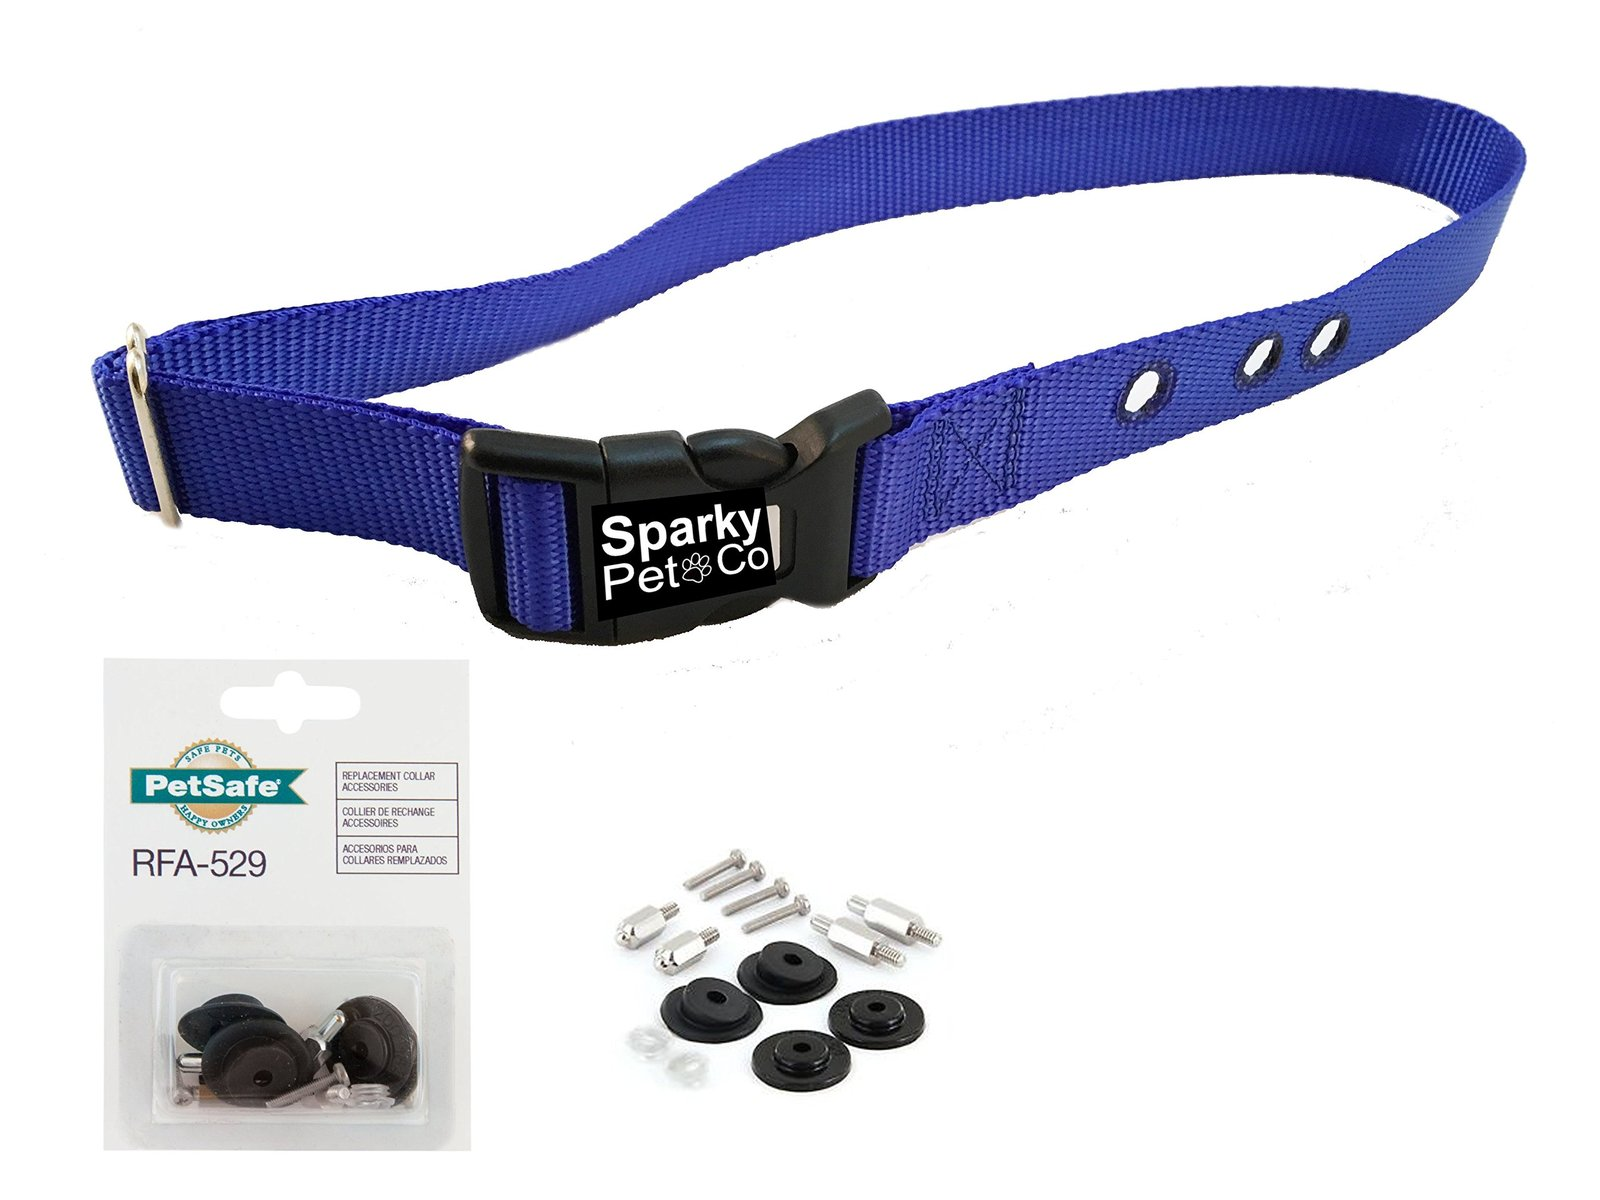 "Sparky PetCo PetSafe IF Compatible 3/4"" BC103 Replacement Bark Collars And Pe..."